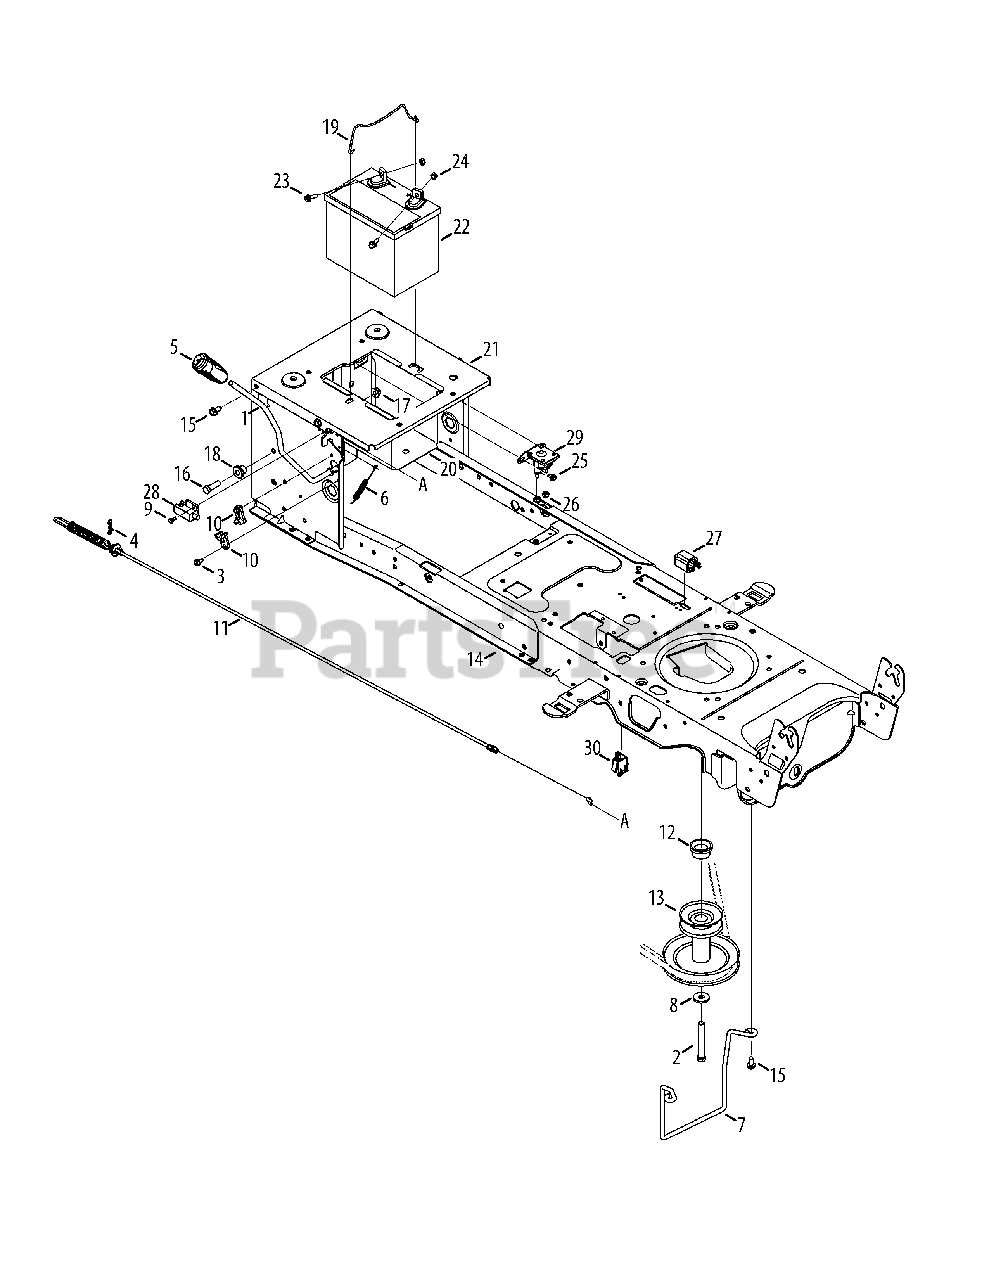 Yard-Man Parts on the Manual PTO & Battery Diagram for